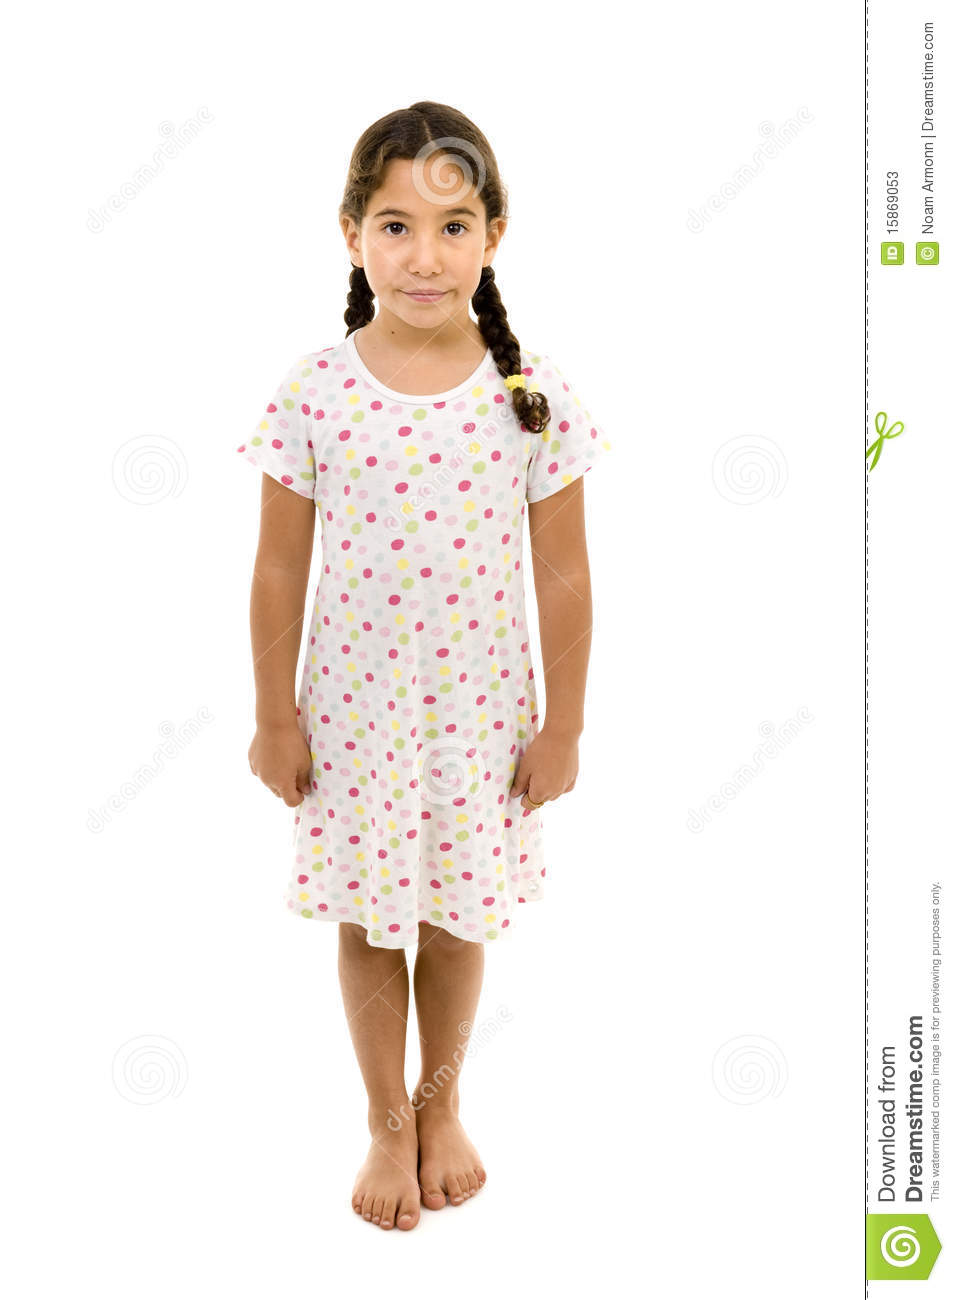 More similar stock images of ` Little girl nightgown `